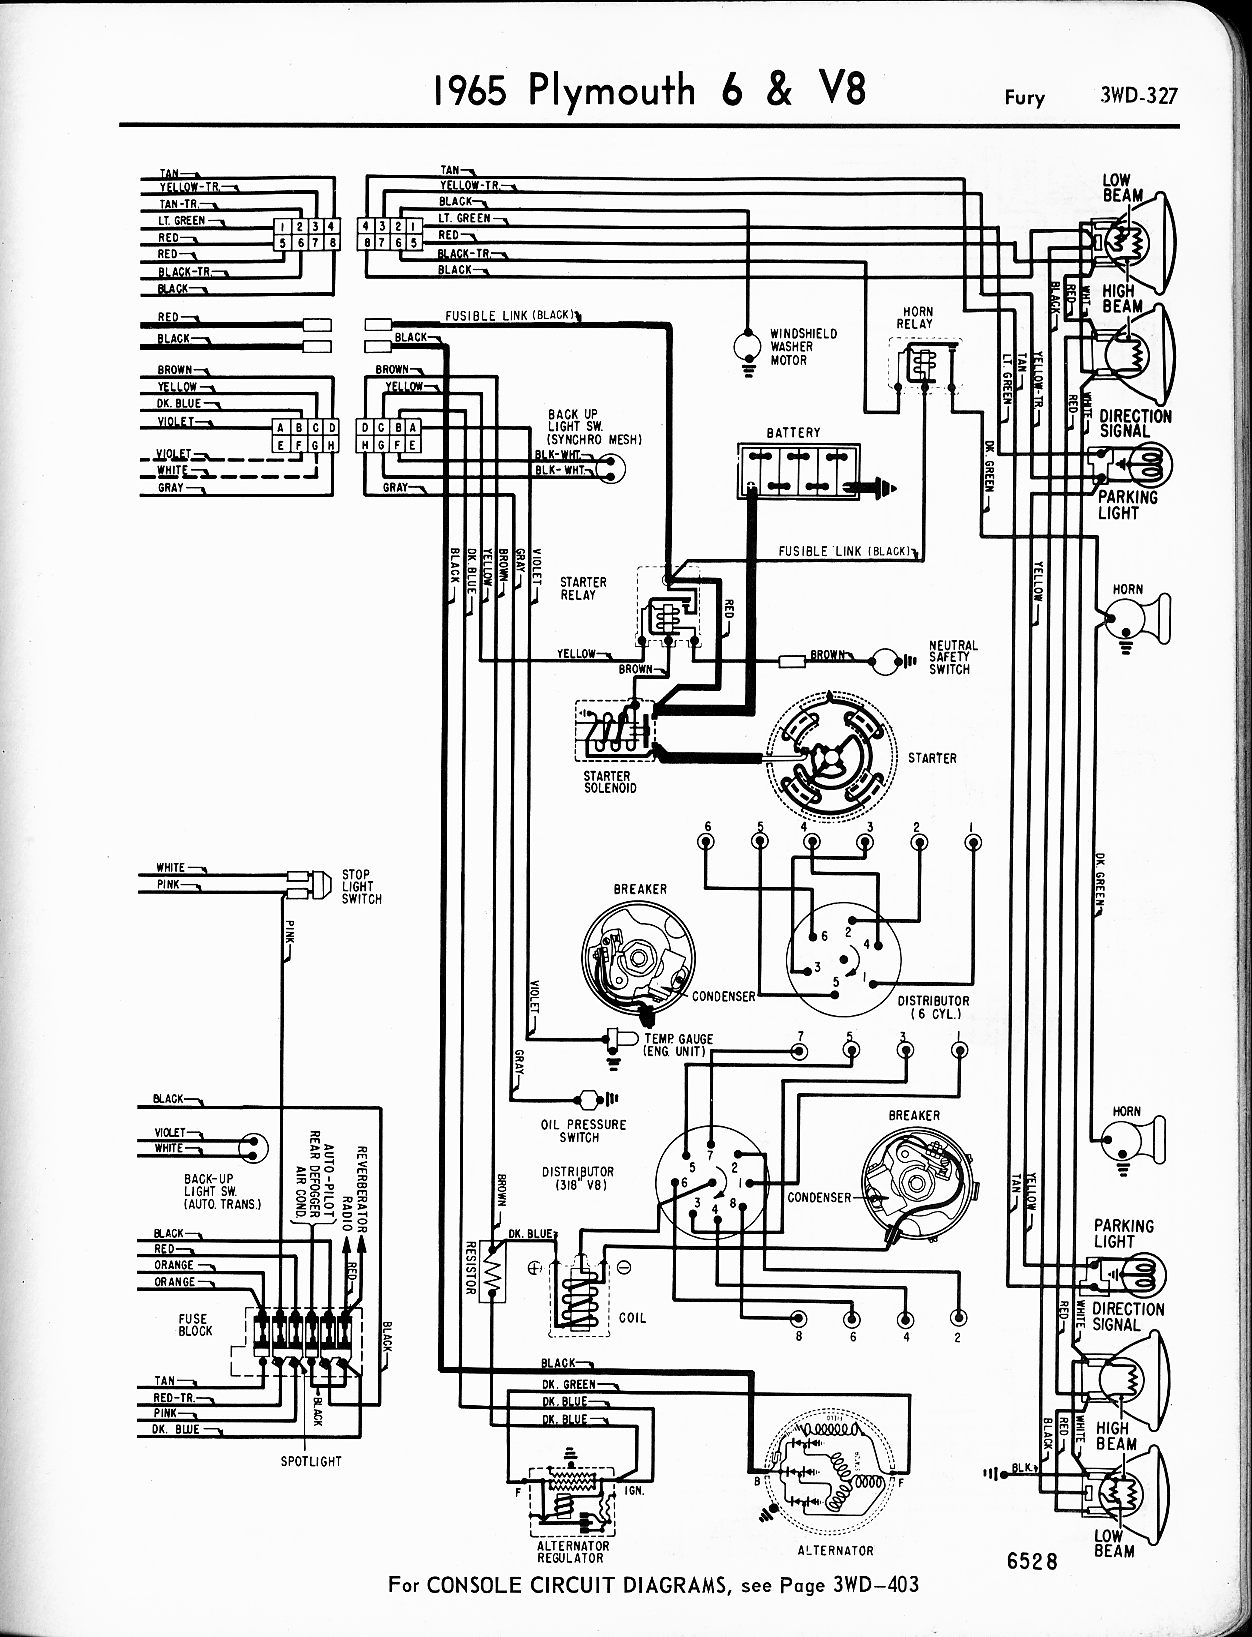 1972 barracuda wiring harness amc javelin wiring diagrams rh kol anya